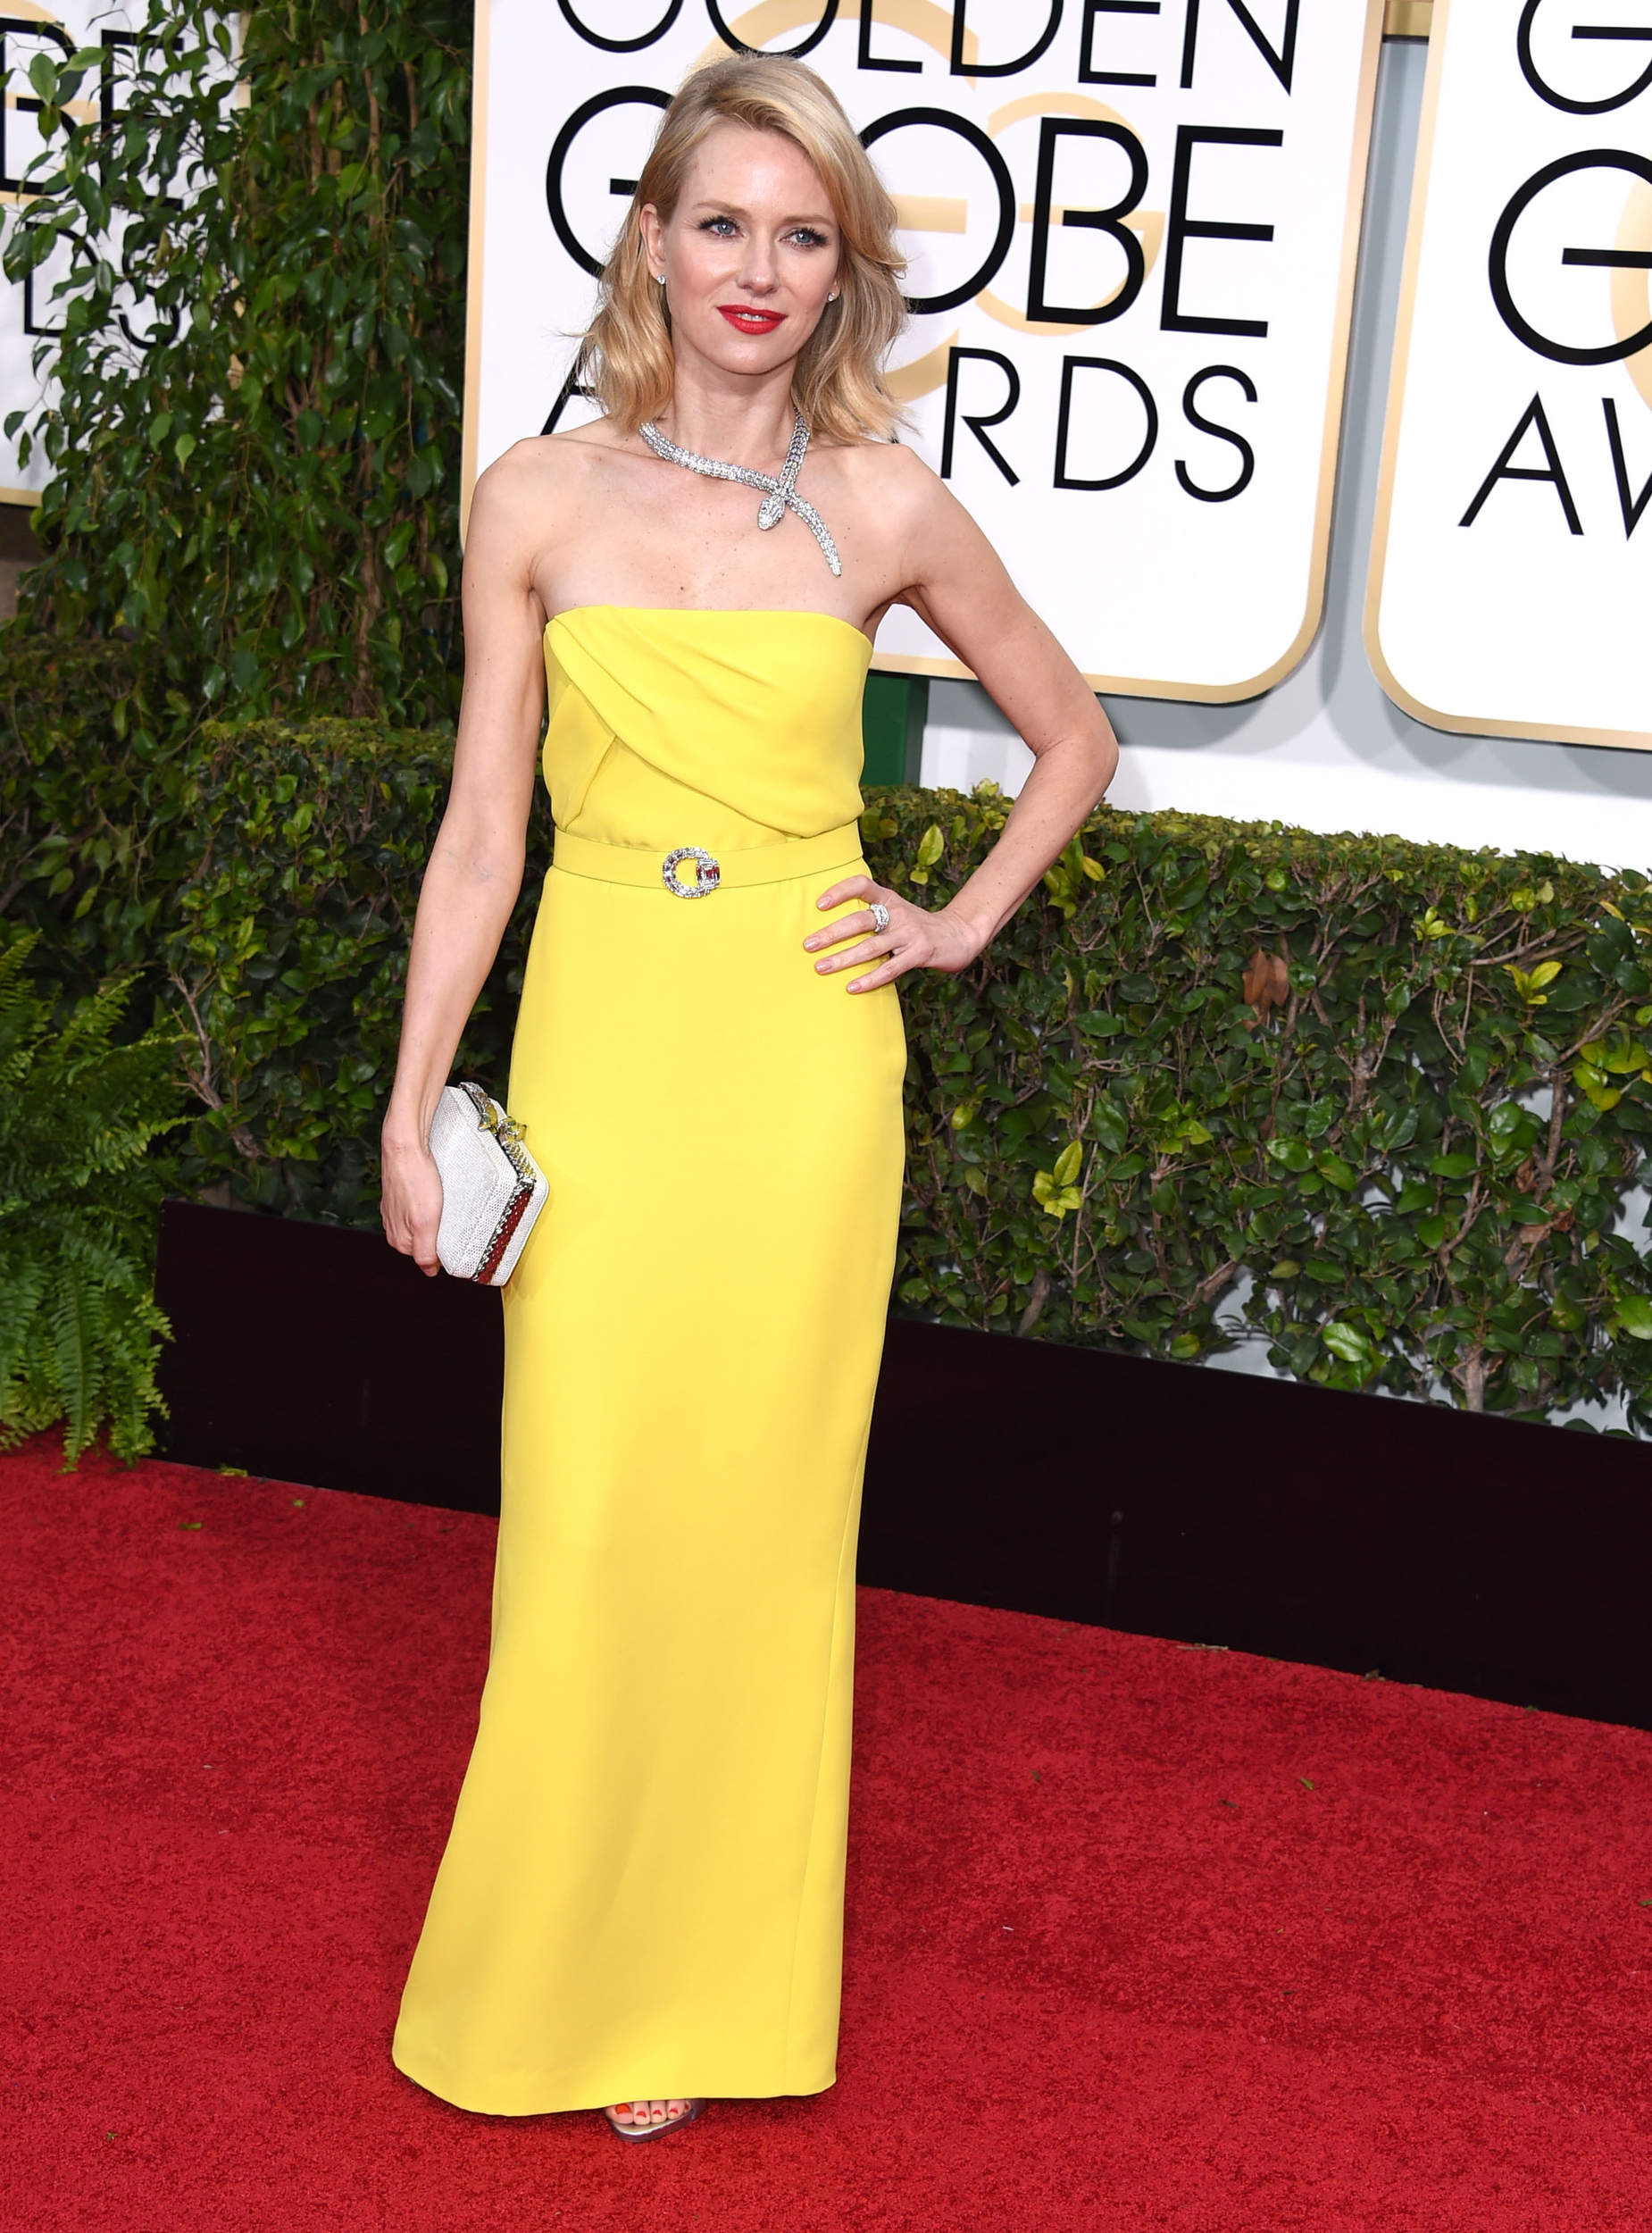 72nd-annual-golden-globe-awards-arrivals-11